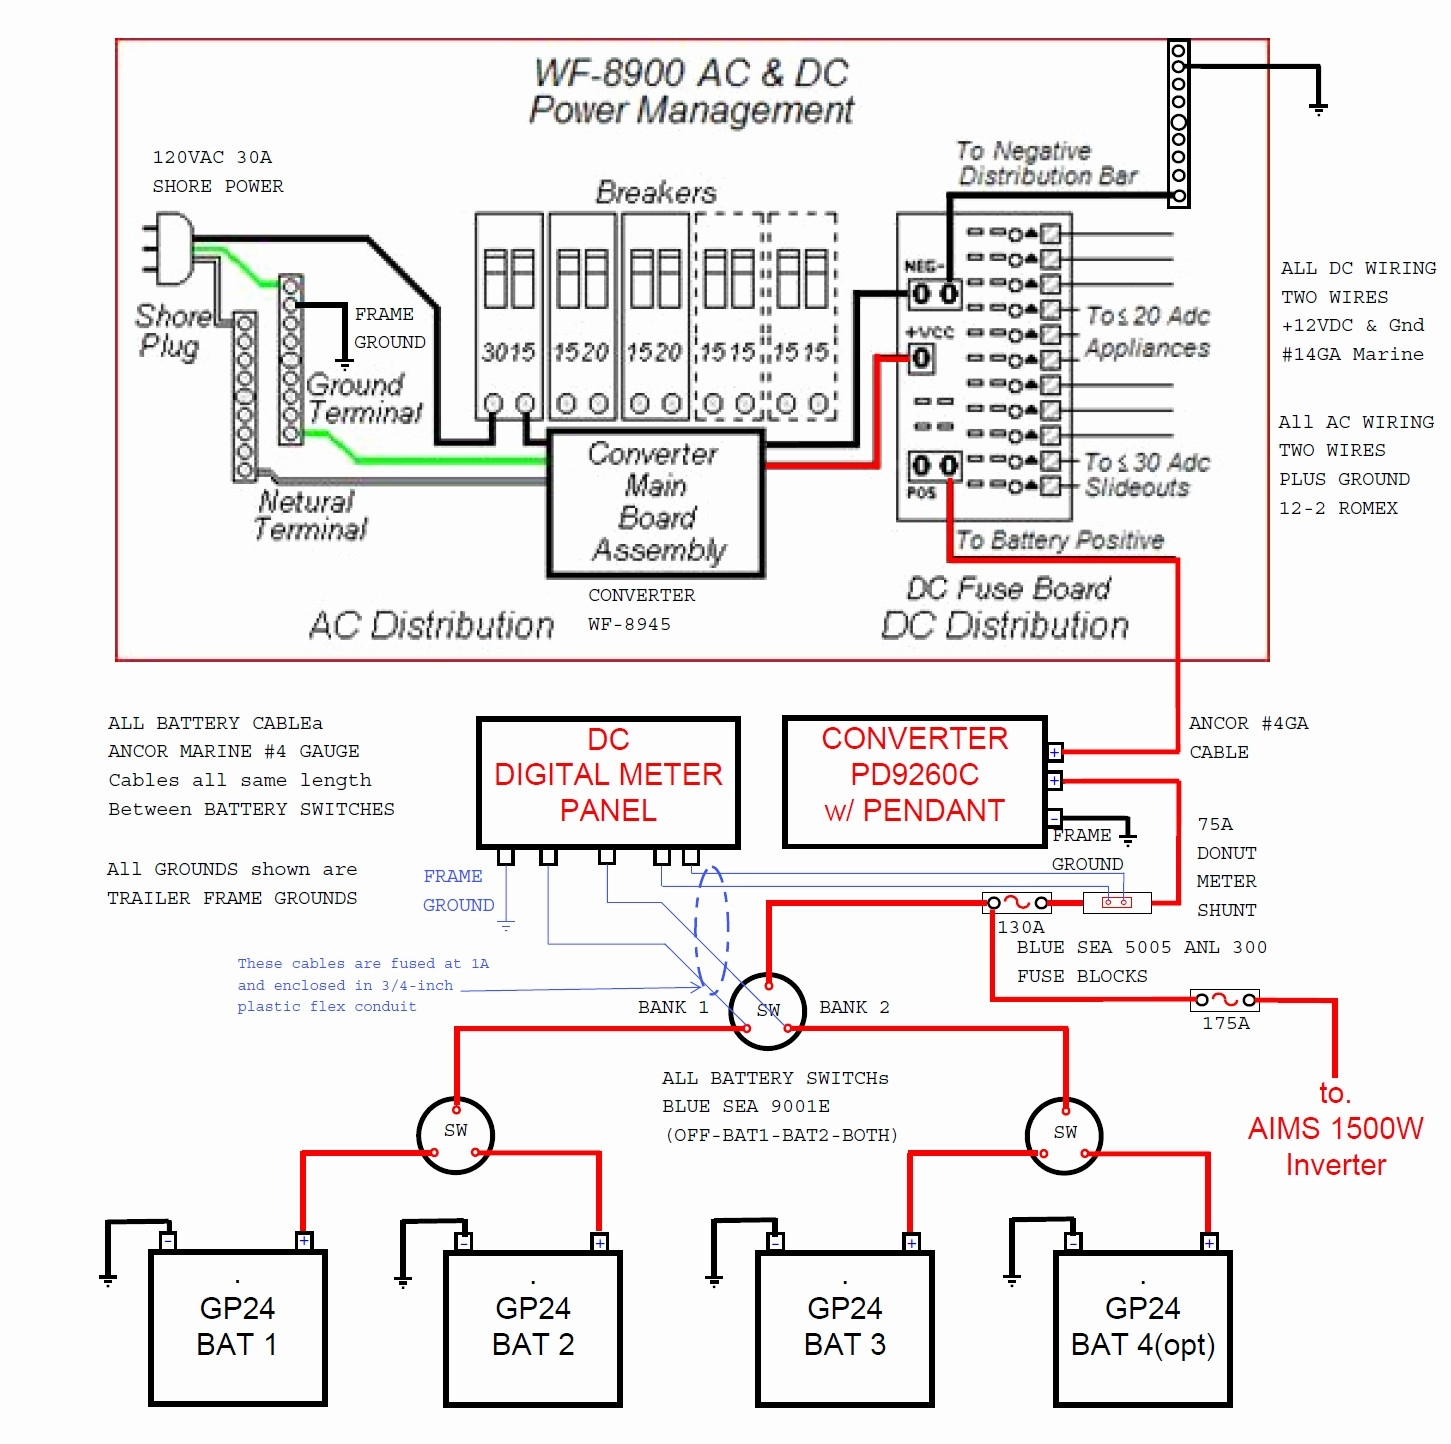 50 Amp Plug Wiring Diagram from static-cdn.imageservice.cloud